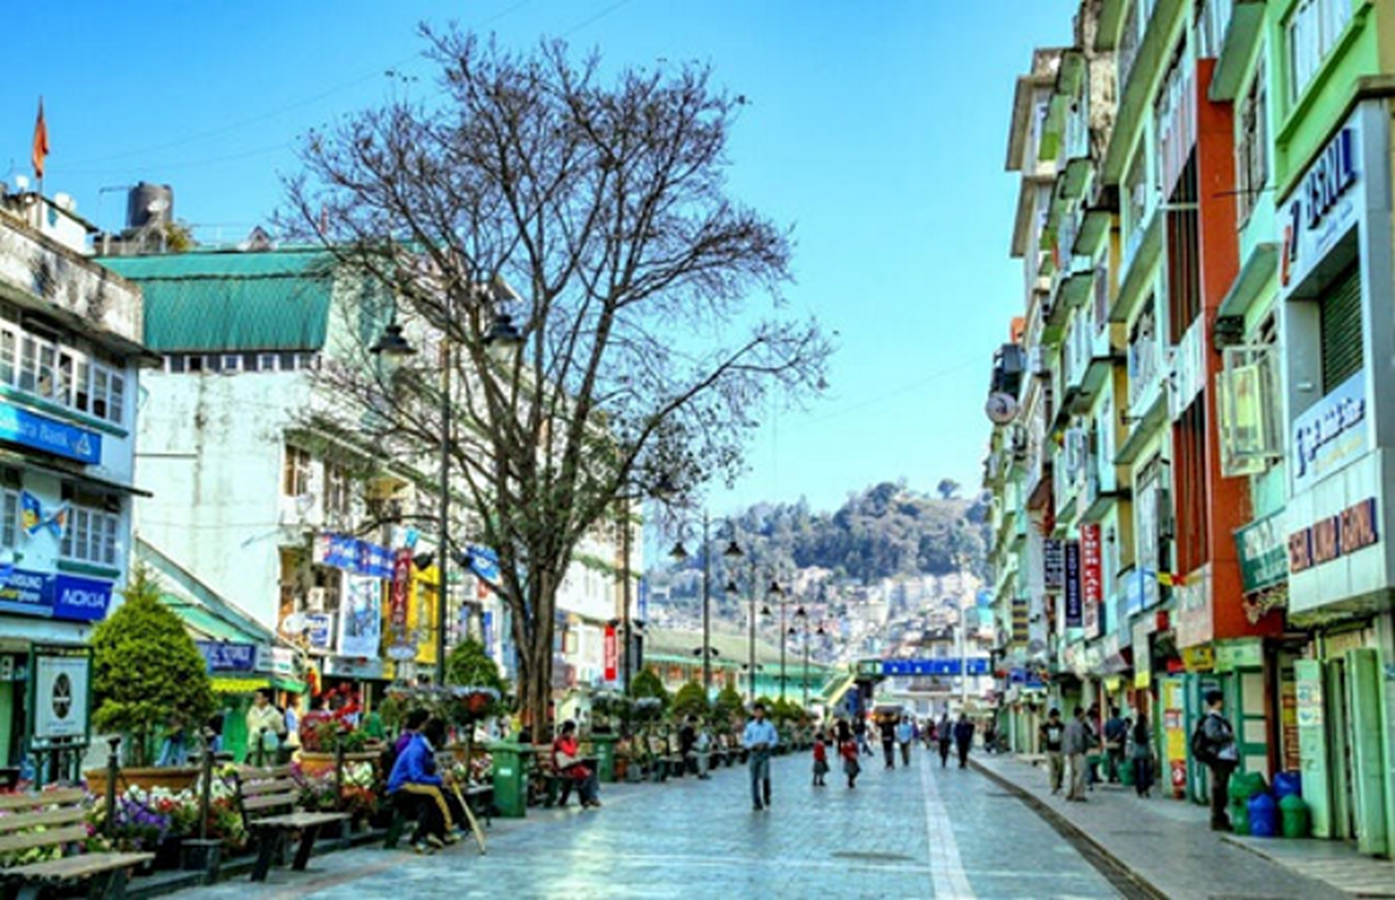 Architecture of Indian Cities Gangtok- Inside the tranquility of Buddhist heritage - Sheet14